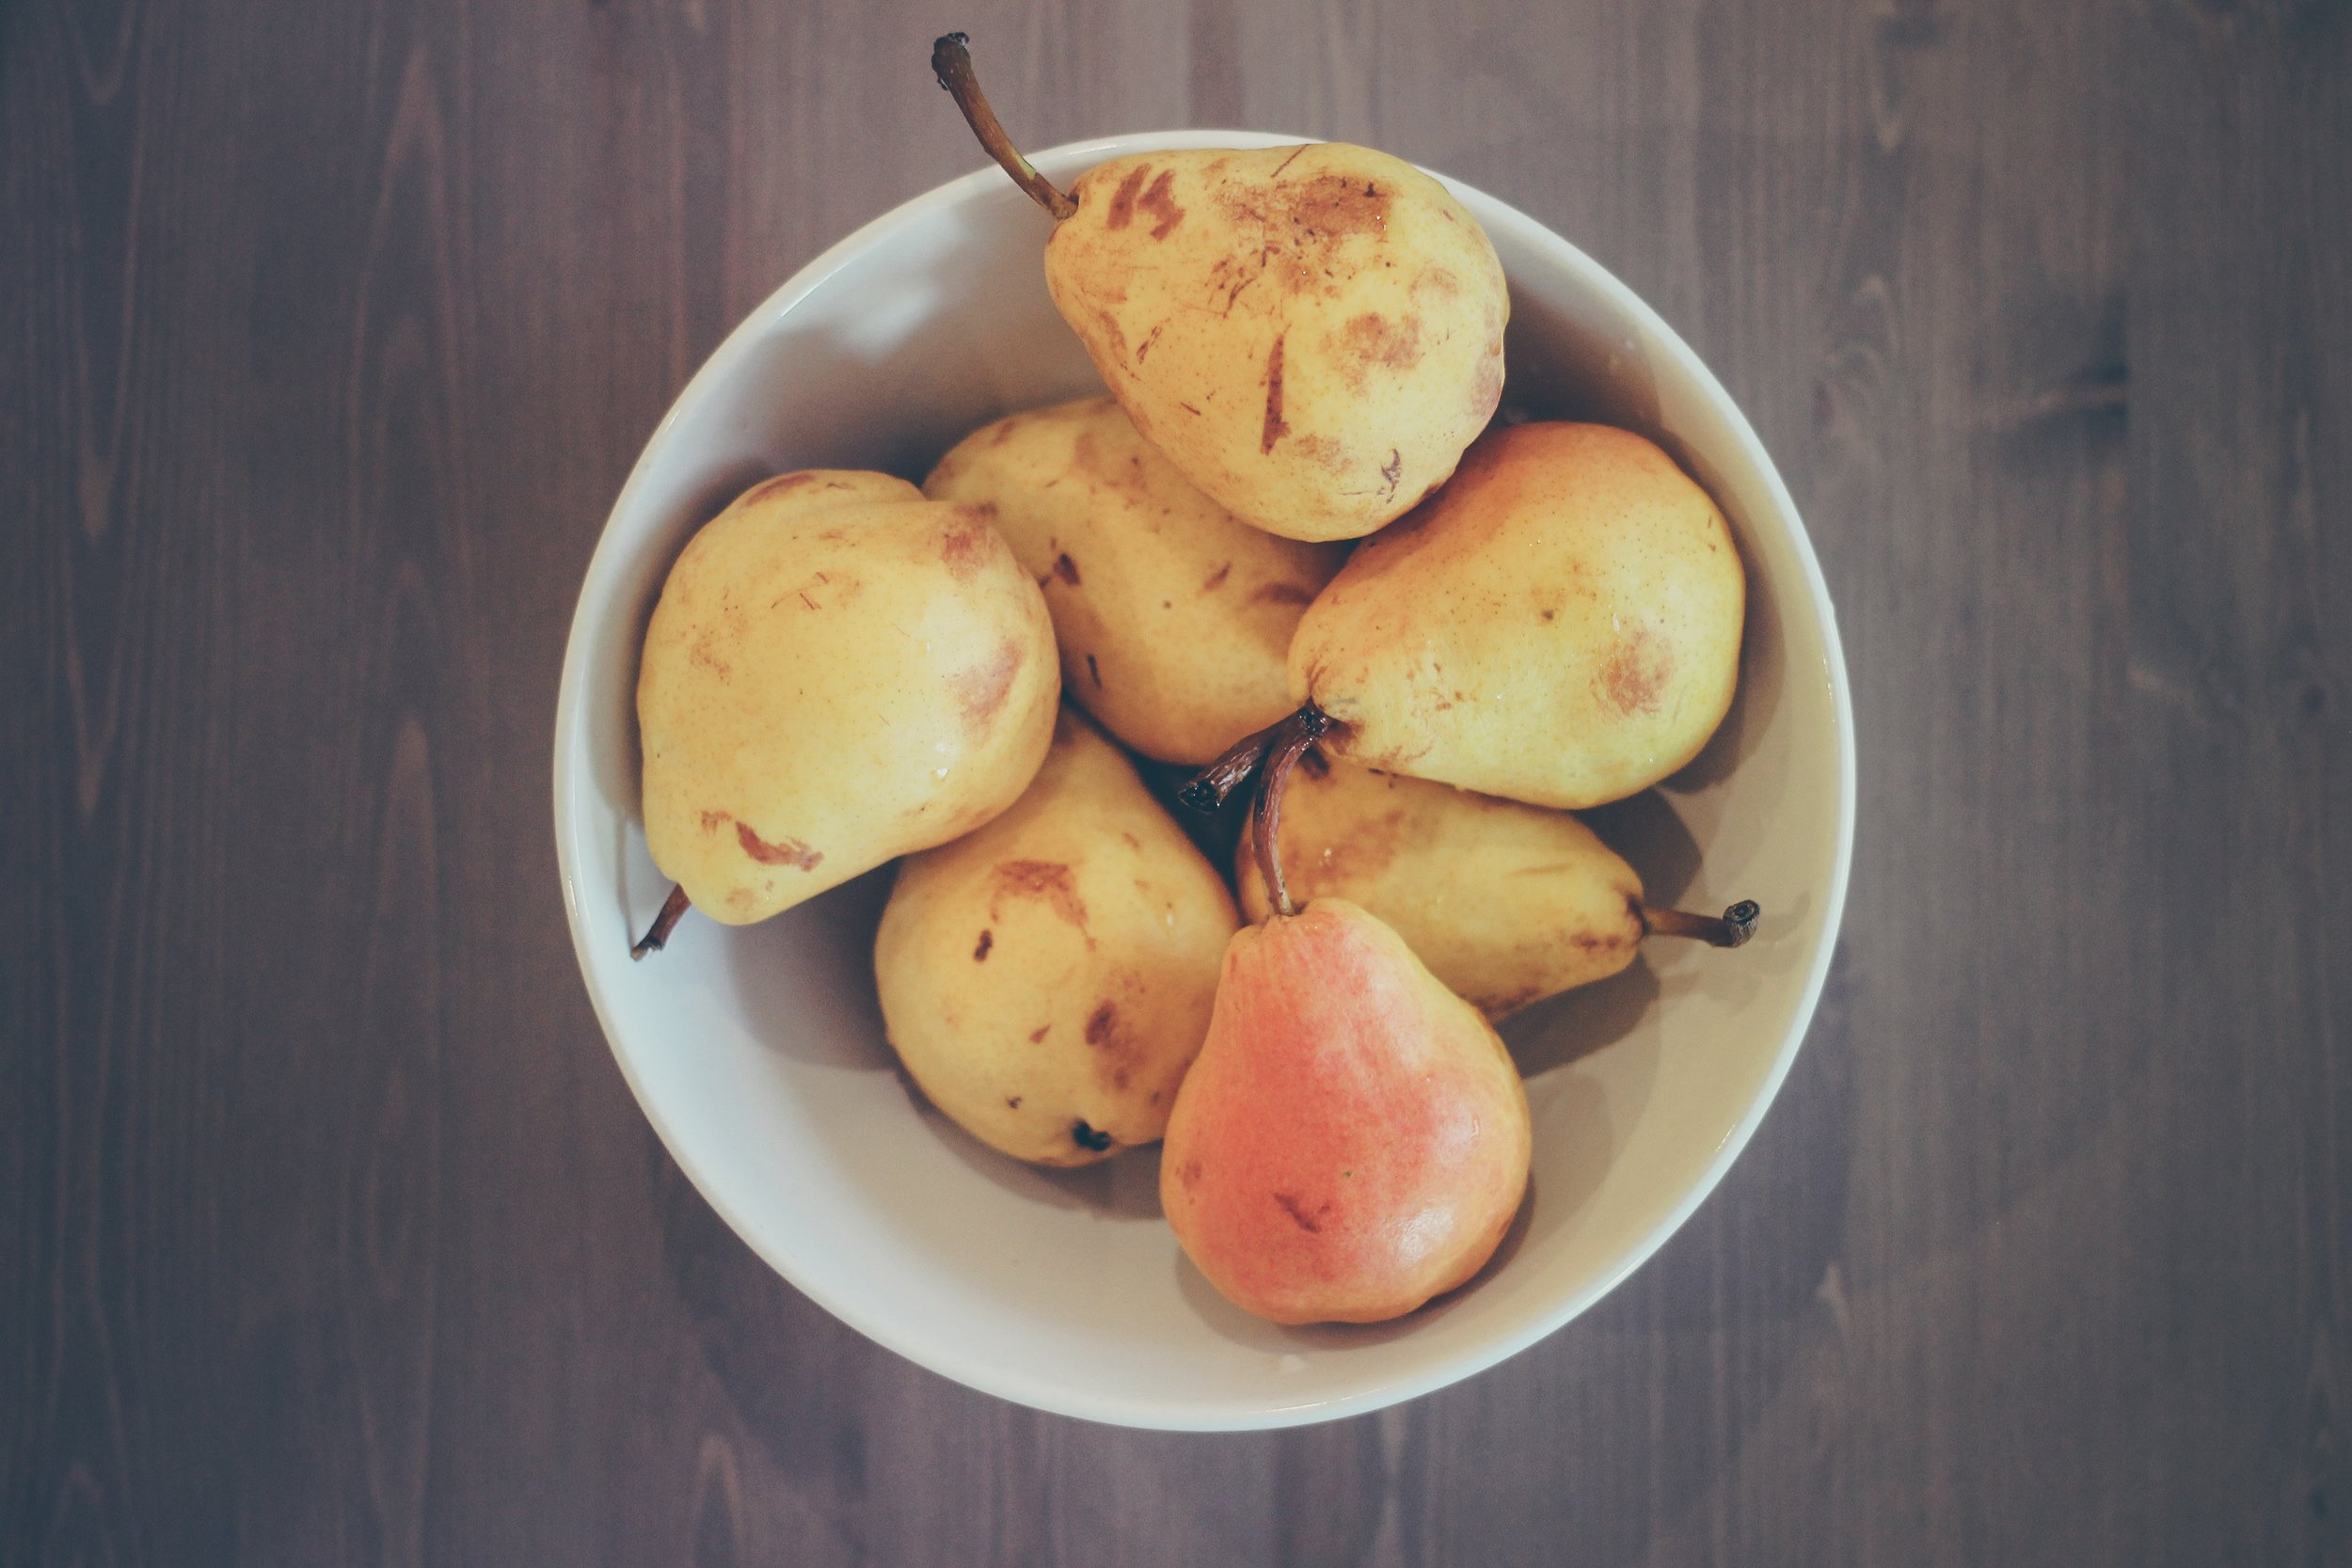 Pears are cleansing and full of vitamins, minerals and fiber. They gently cleanse the liver and help the flu; relieving thirst and reducing phlegm. -